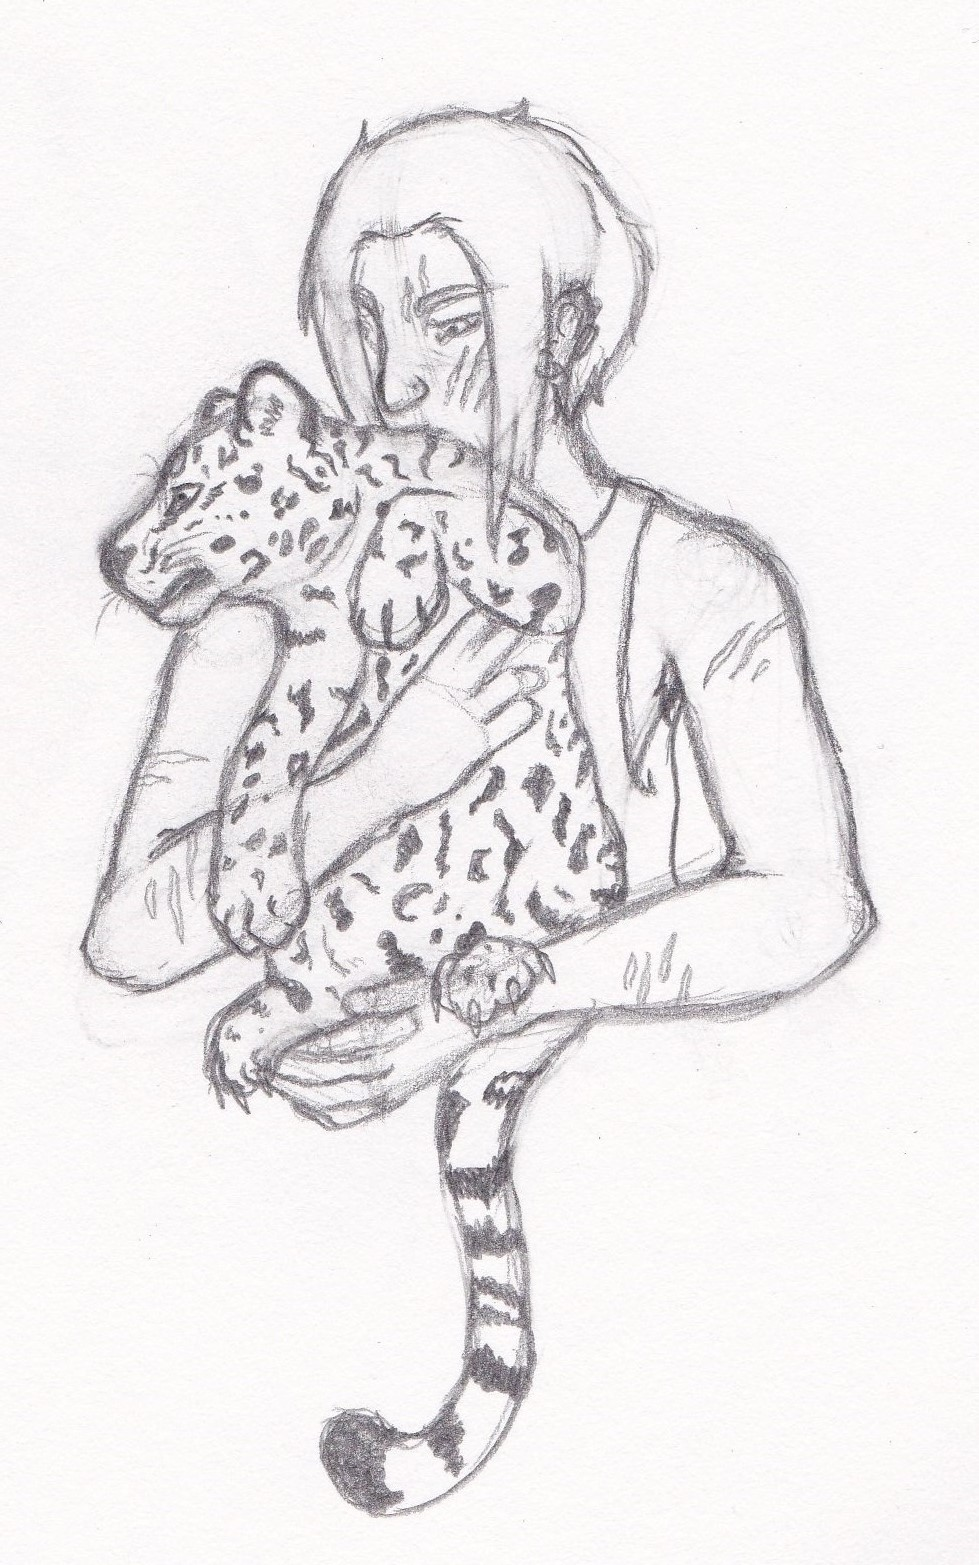 Most recent image: Baby Feral Jag AU